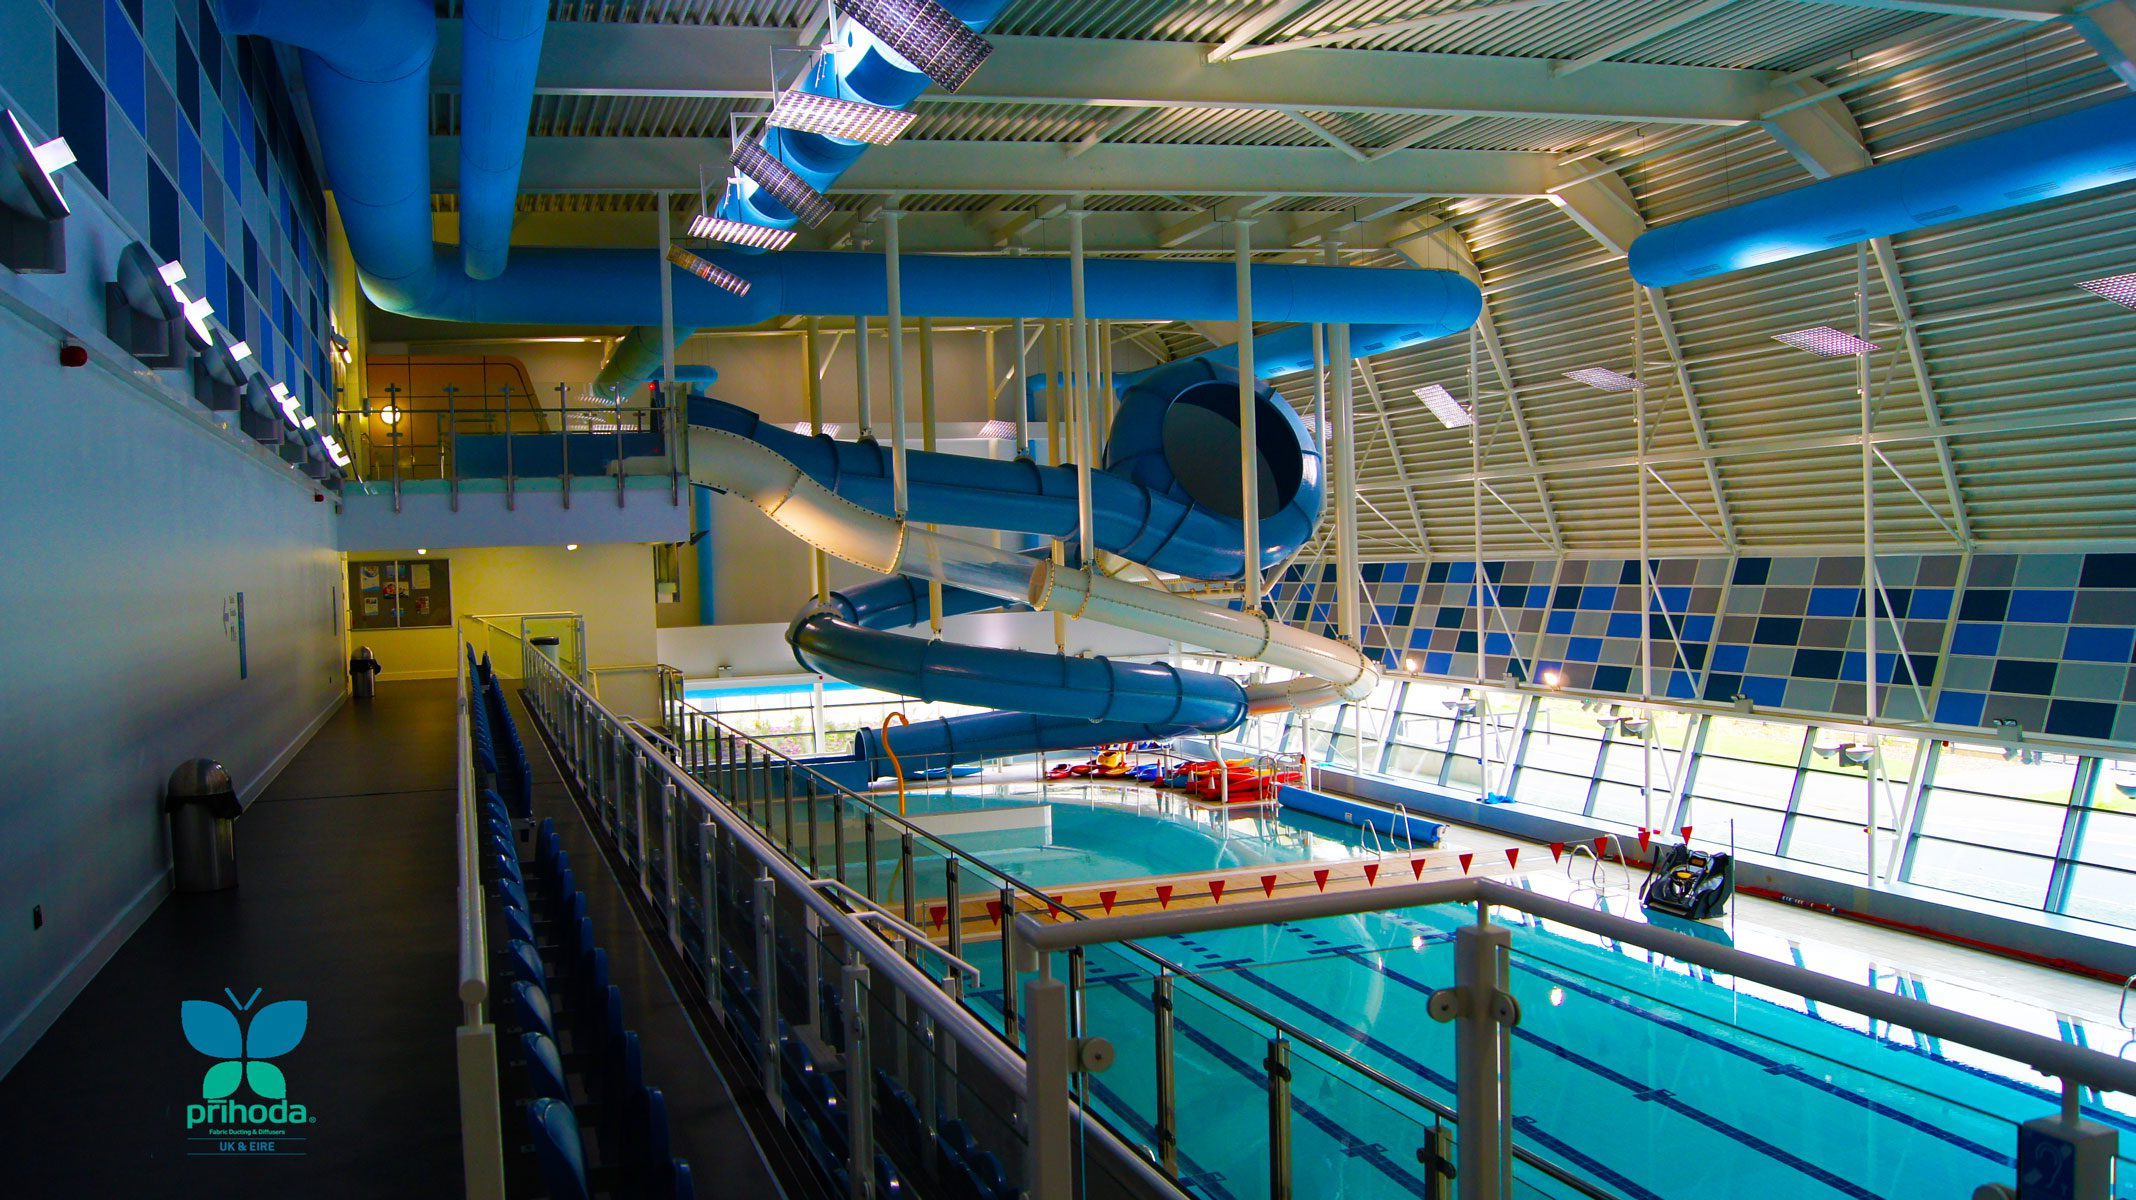 blue ducting in large swimming pool area